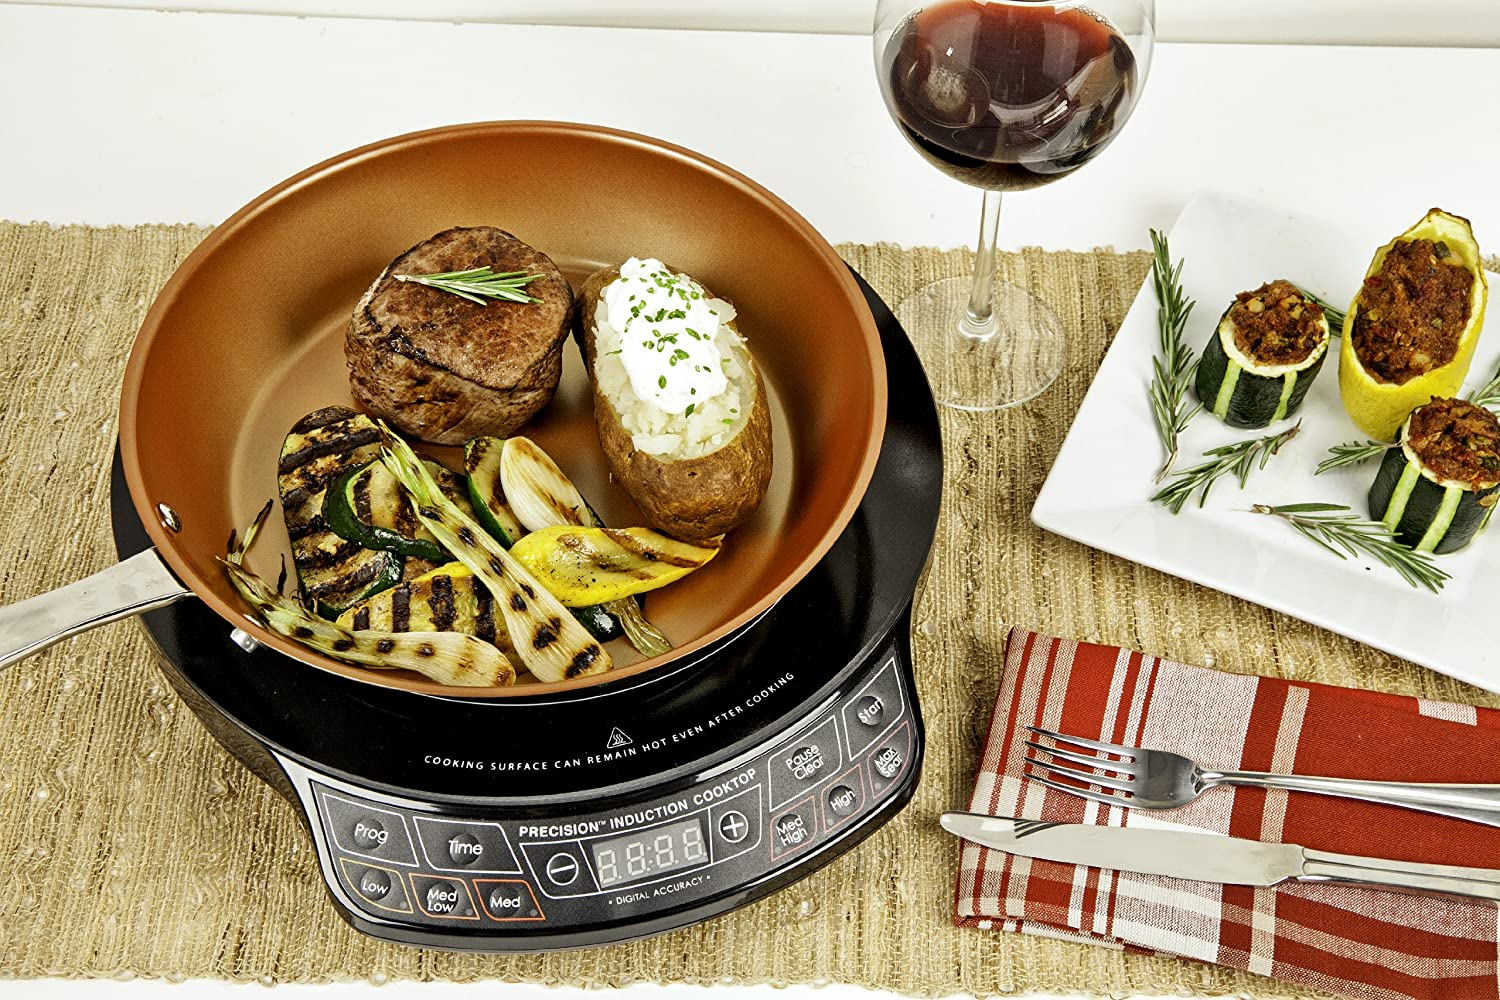 Lovely Nuwave Precision Cooktop